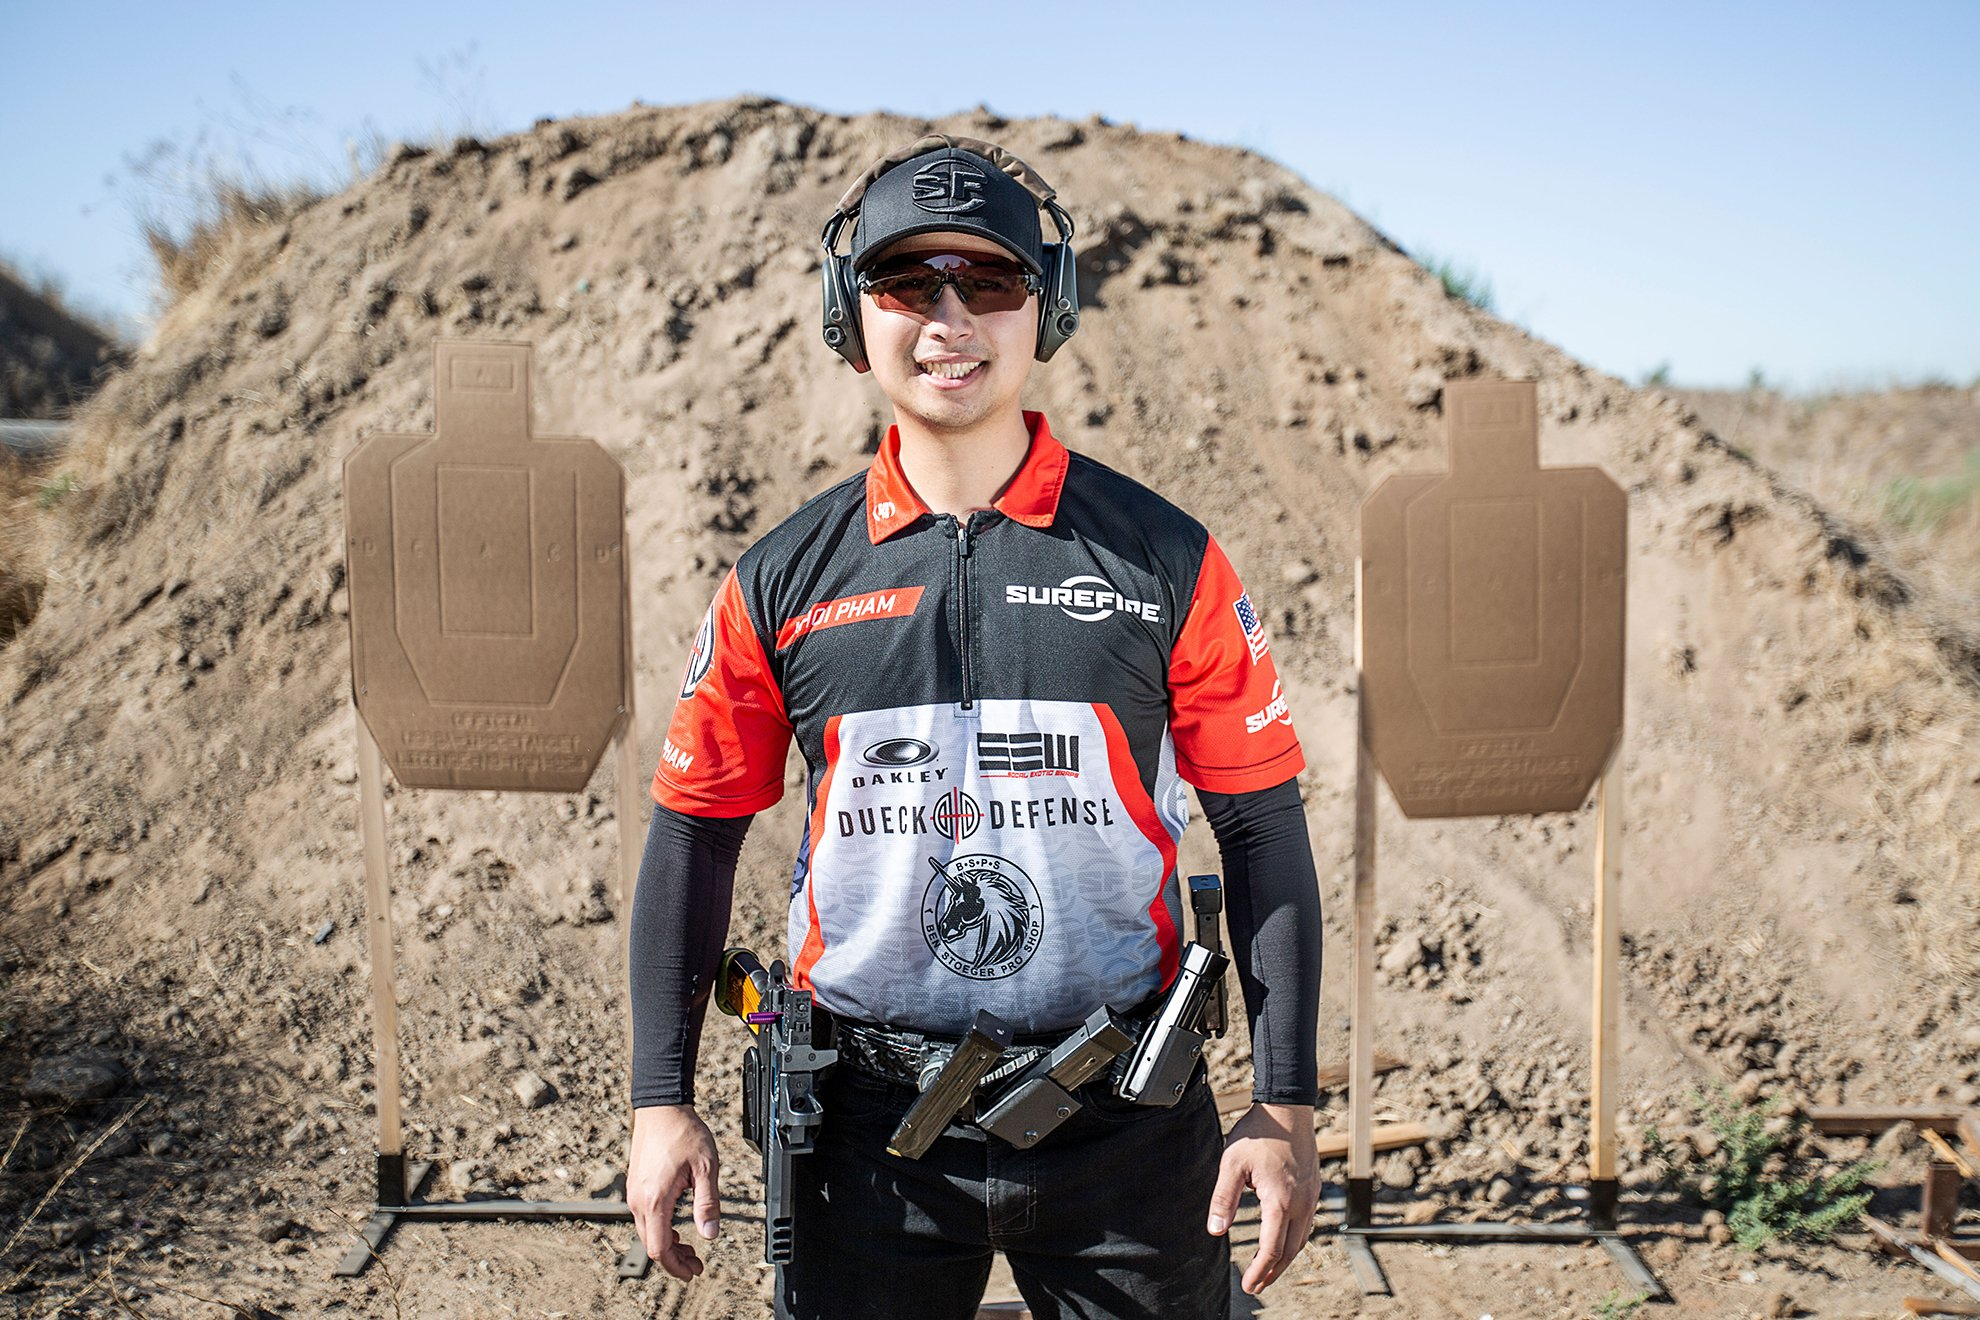 Khoi Pham is a member of Team SureFire